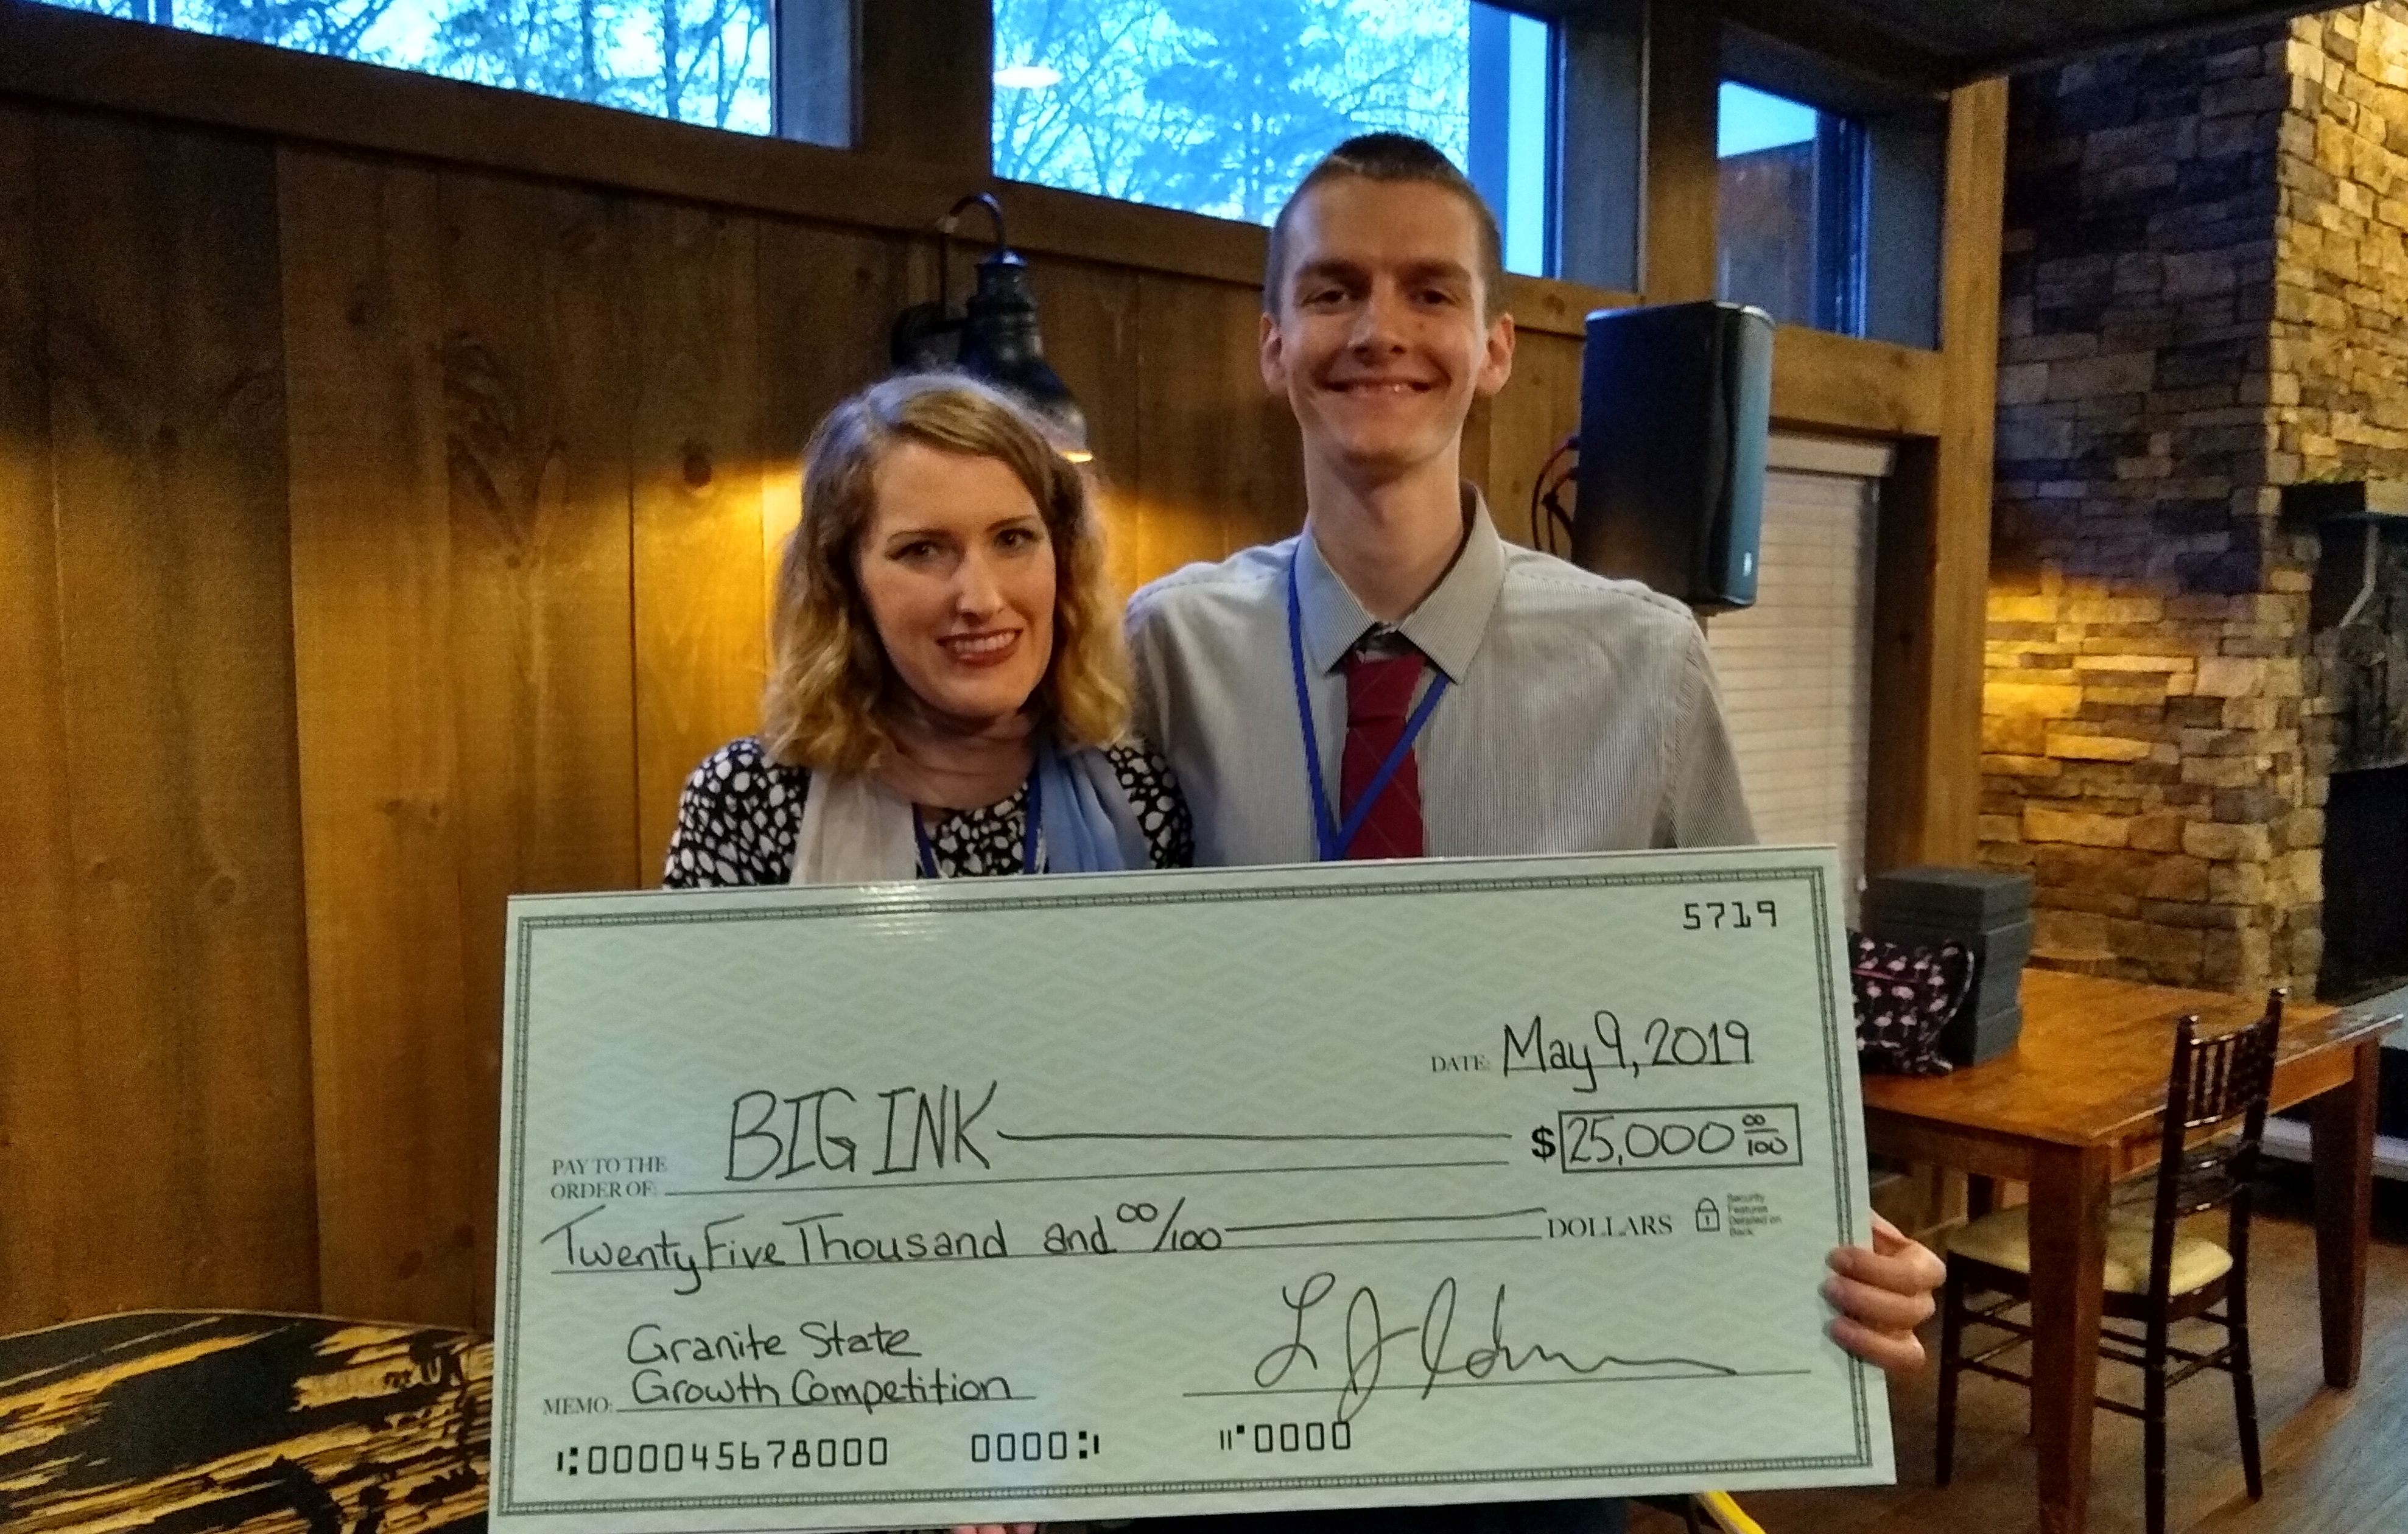 BIG INK Wins Granite State Growth Competition